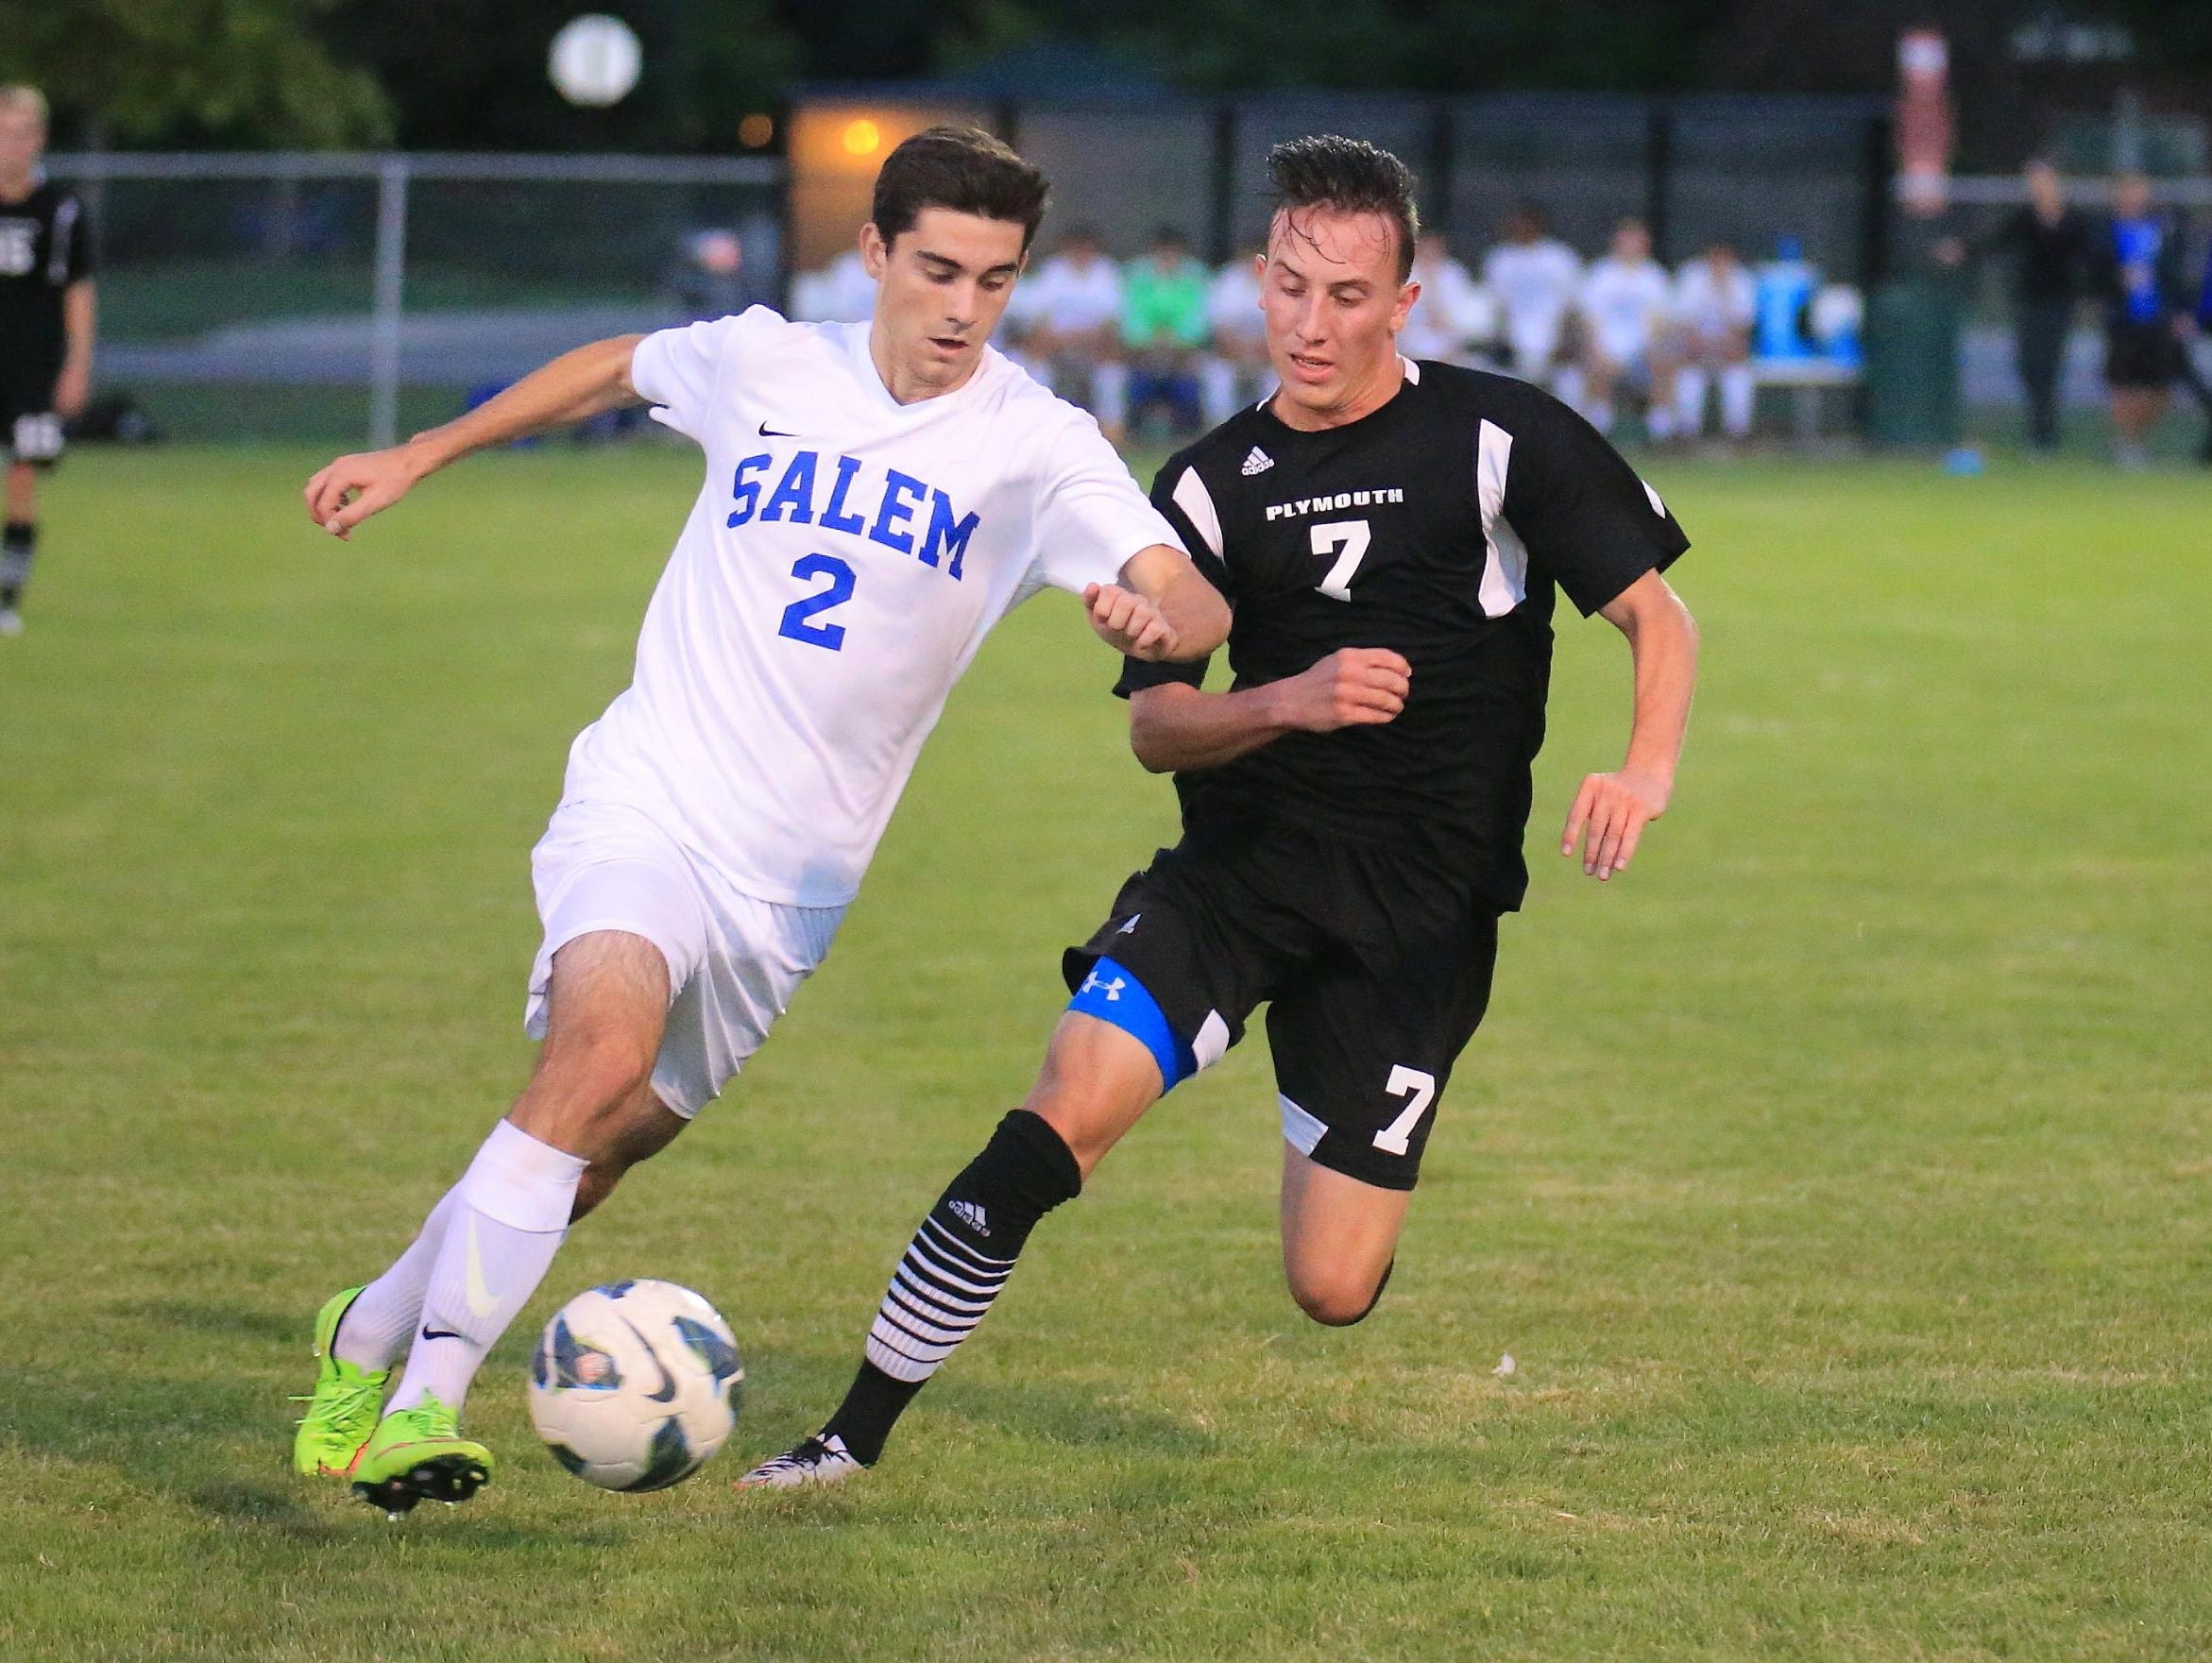 It's a footrace between Salem's Austin Siterlet (No. 2) and Plymouth's Mike Blake (No. 7).